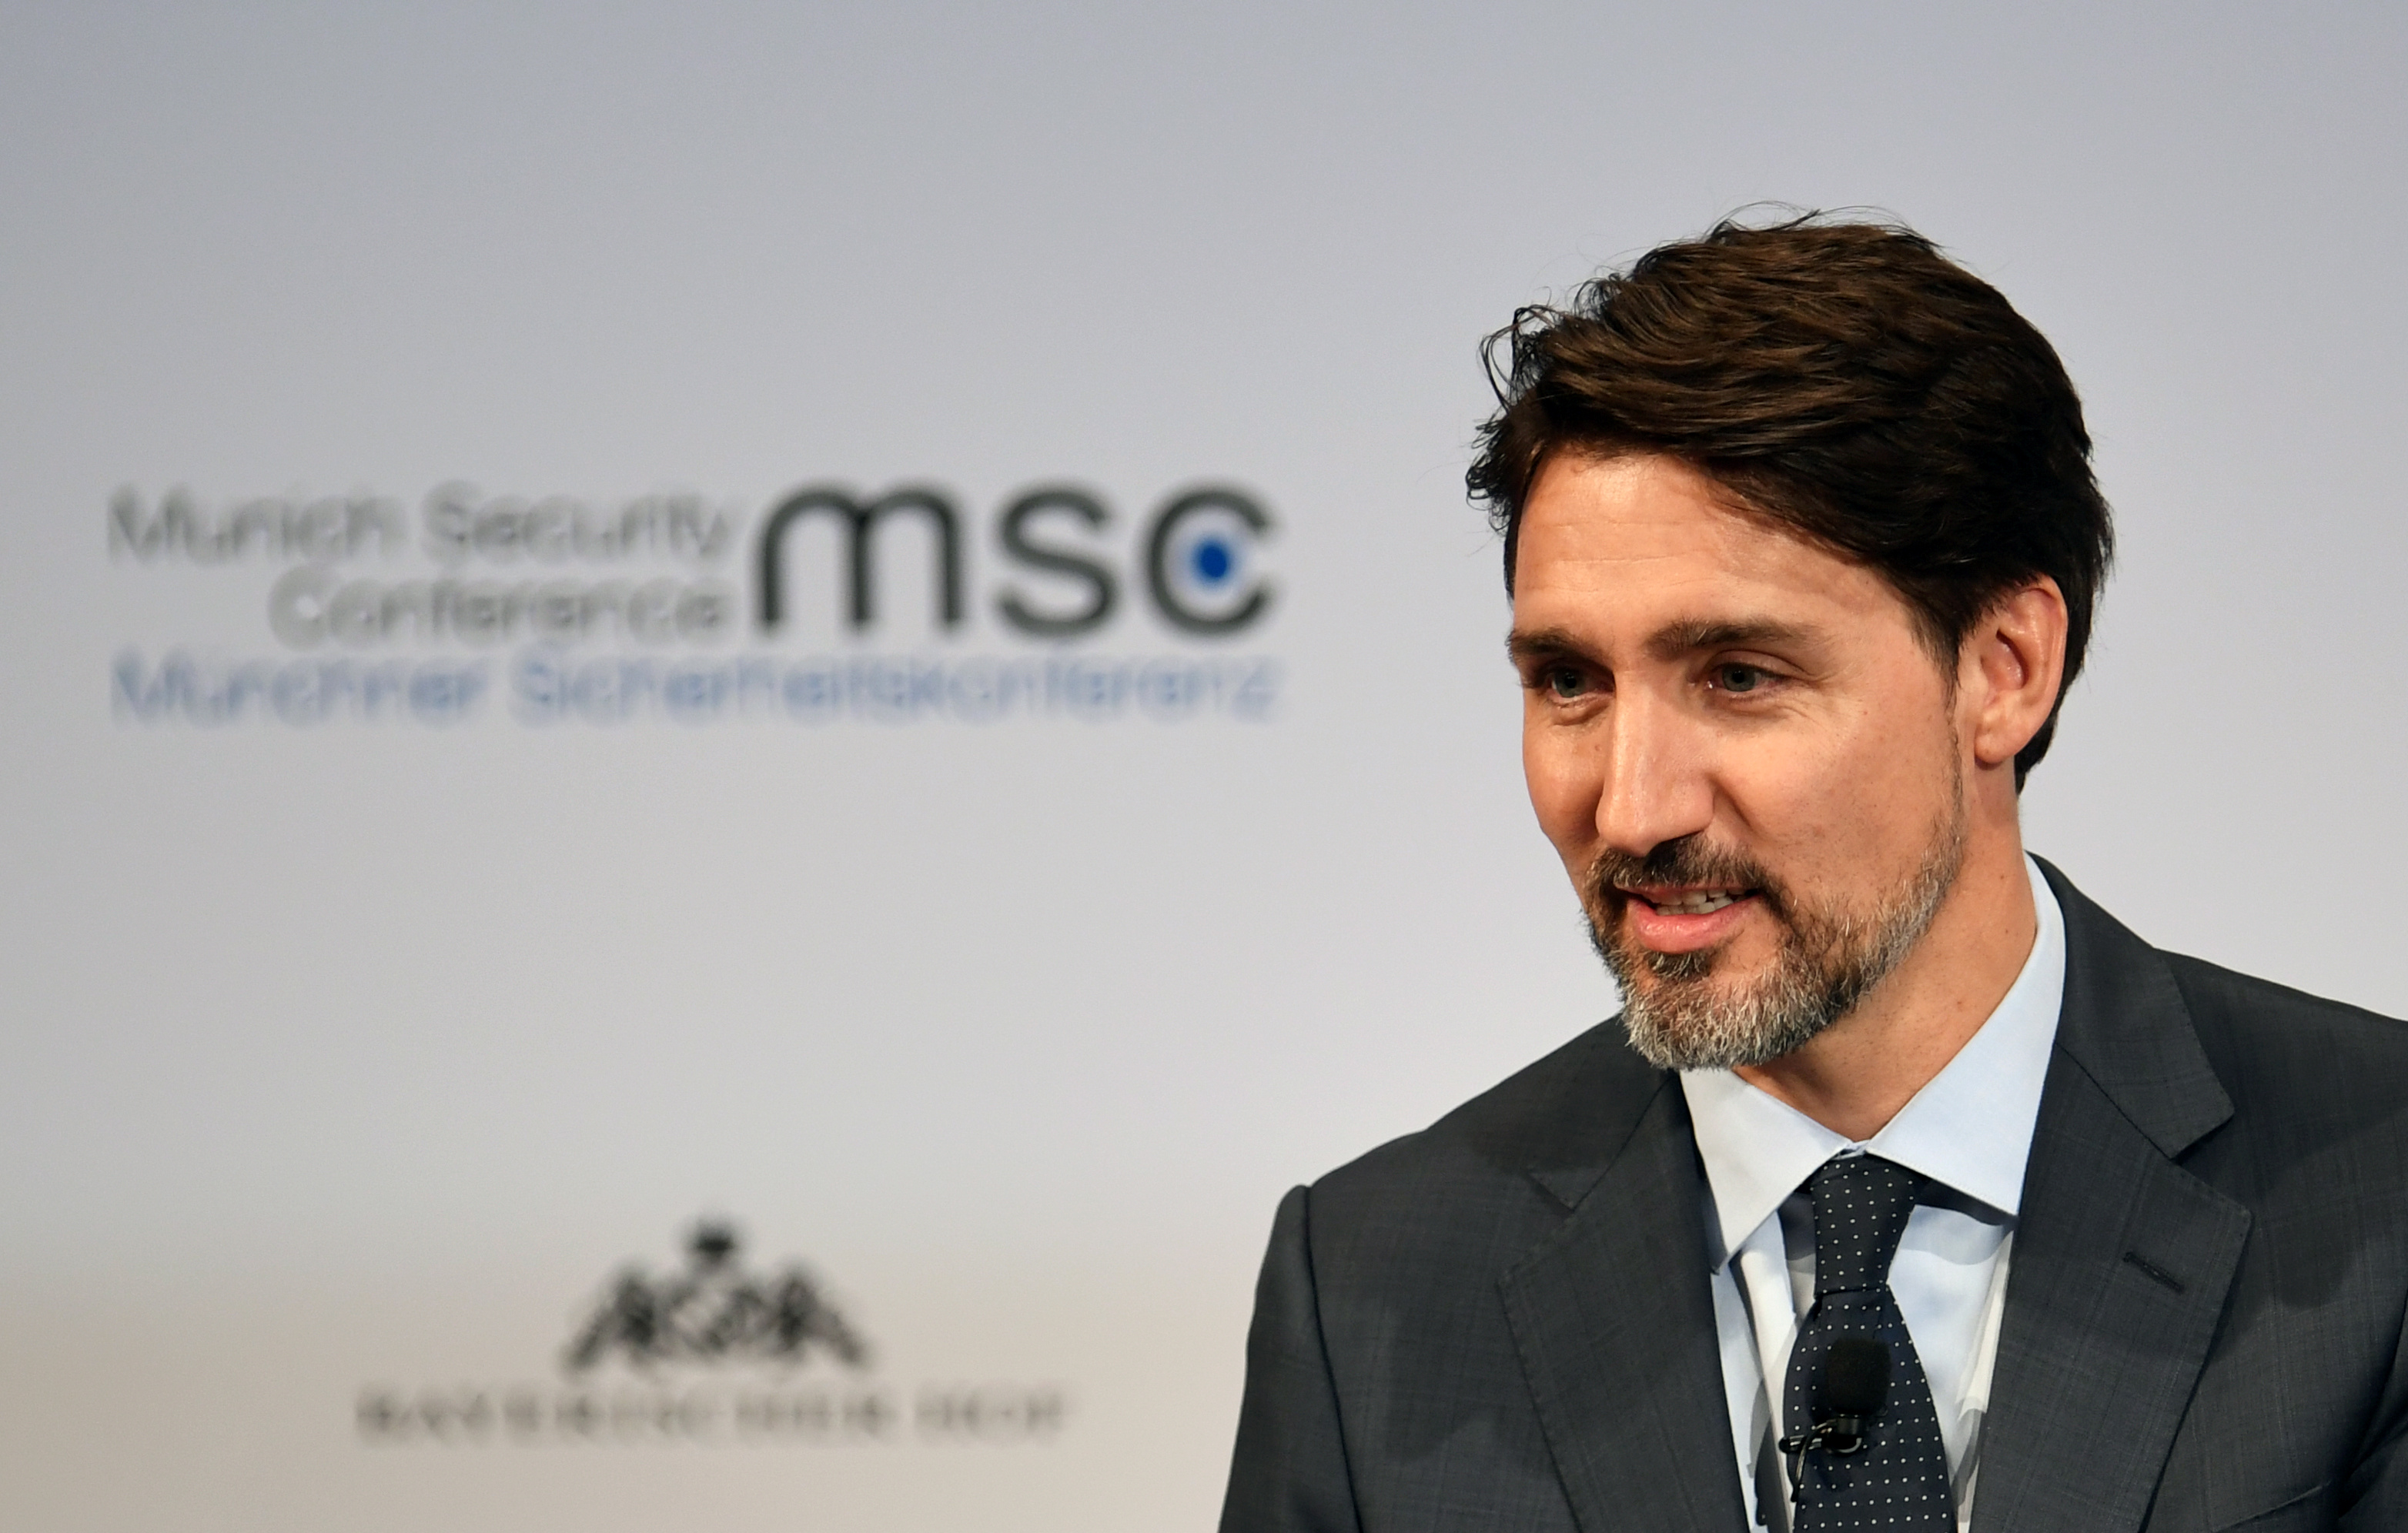 Canada's Prime Minister Justin Trudeau attends the annual Munich Security Conference in Munich, Germany Feb. 14, 2020. REUTERS/ Andreas Gebert